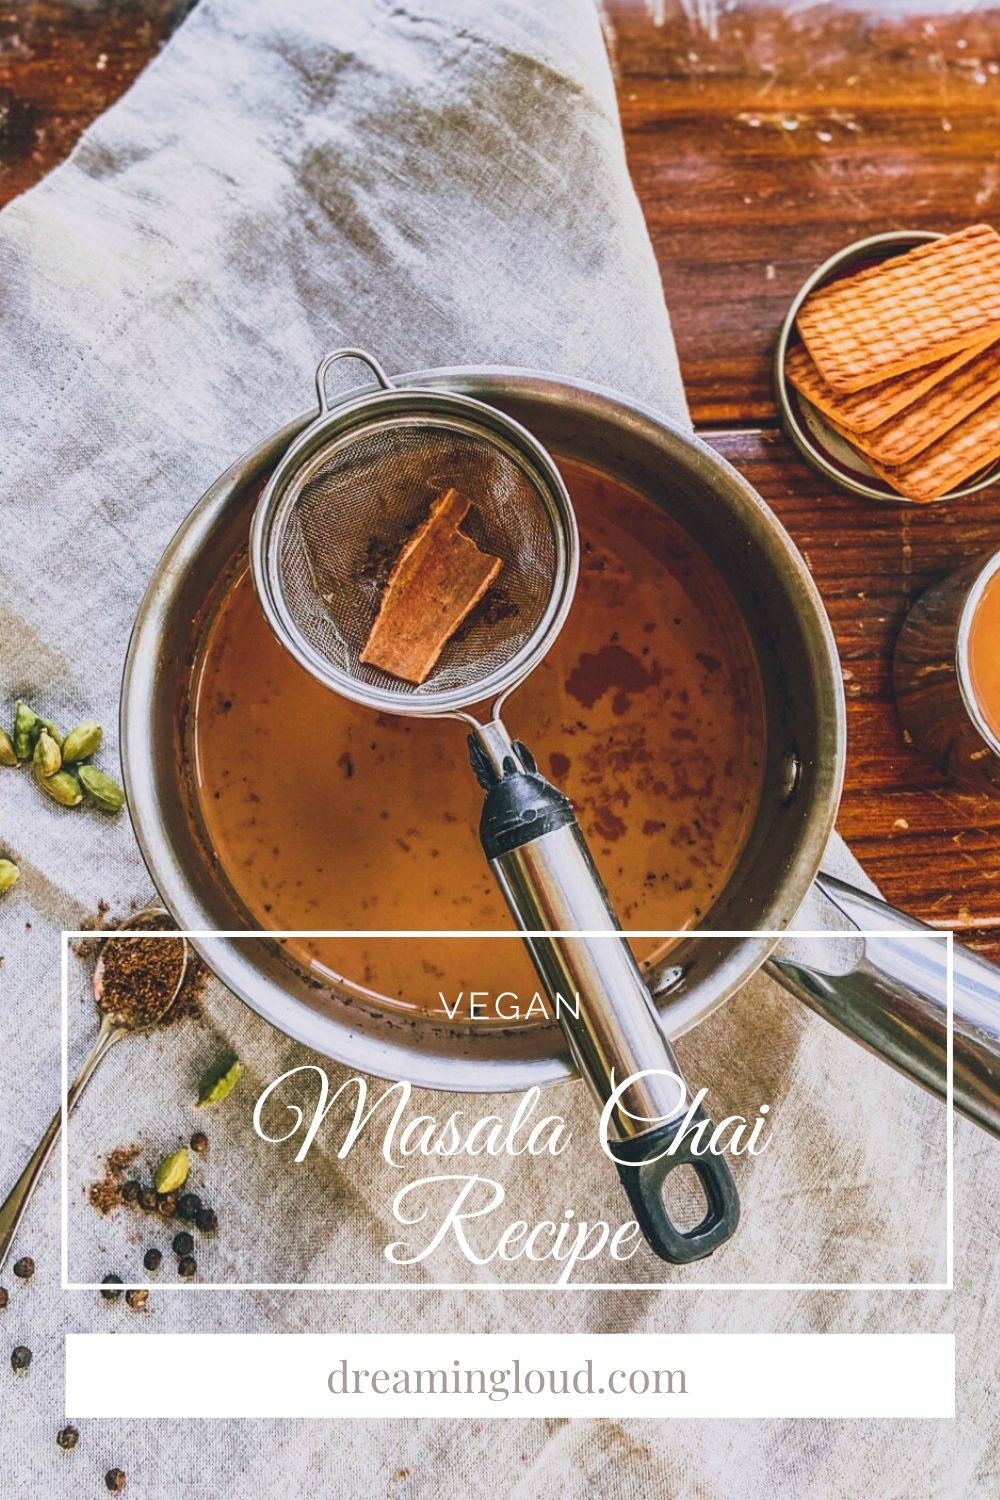 Vegan Masala Chai recipe 6 | Masala Chai Recipe by popular Michigan lifestyle blog, Dreaming Loud: image of vegan masala chai, a strainer, and a dish with biscuits in it.